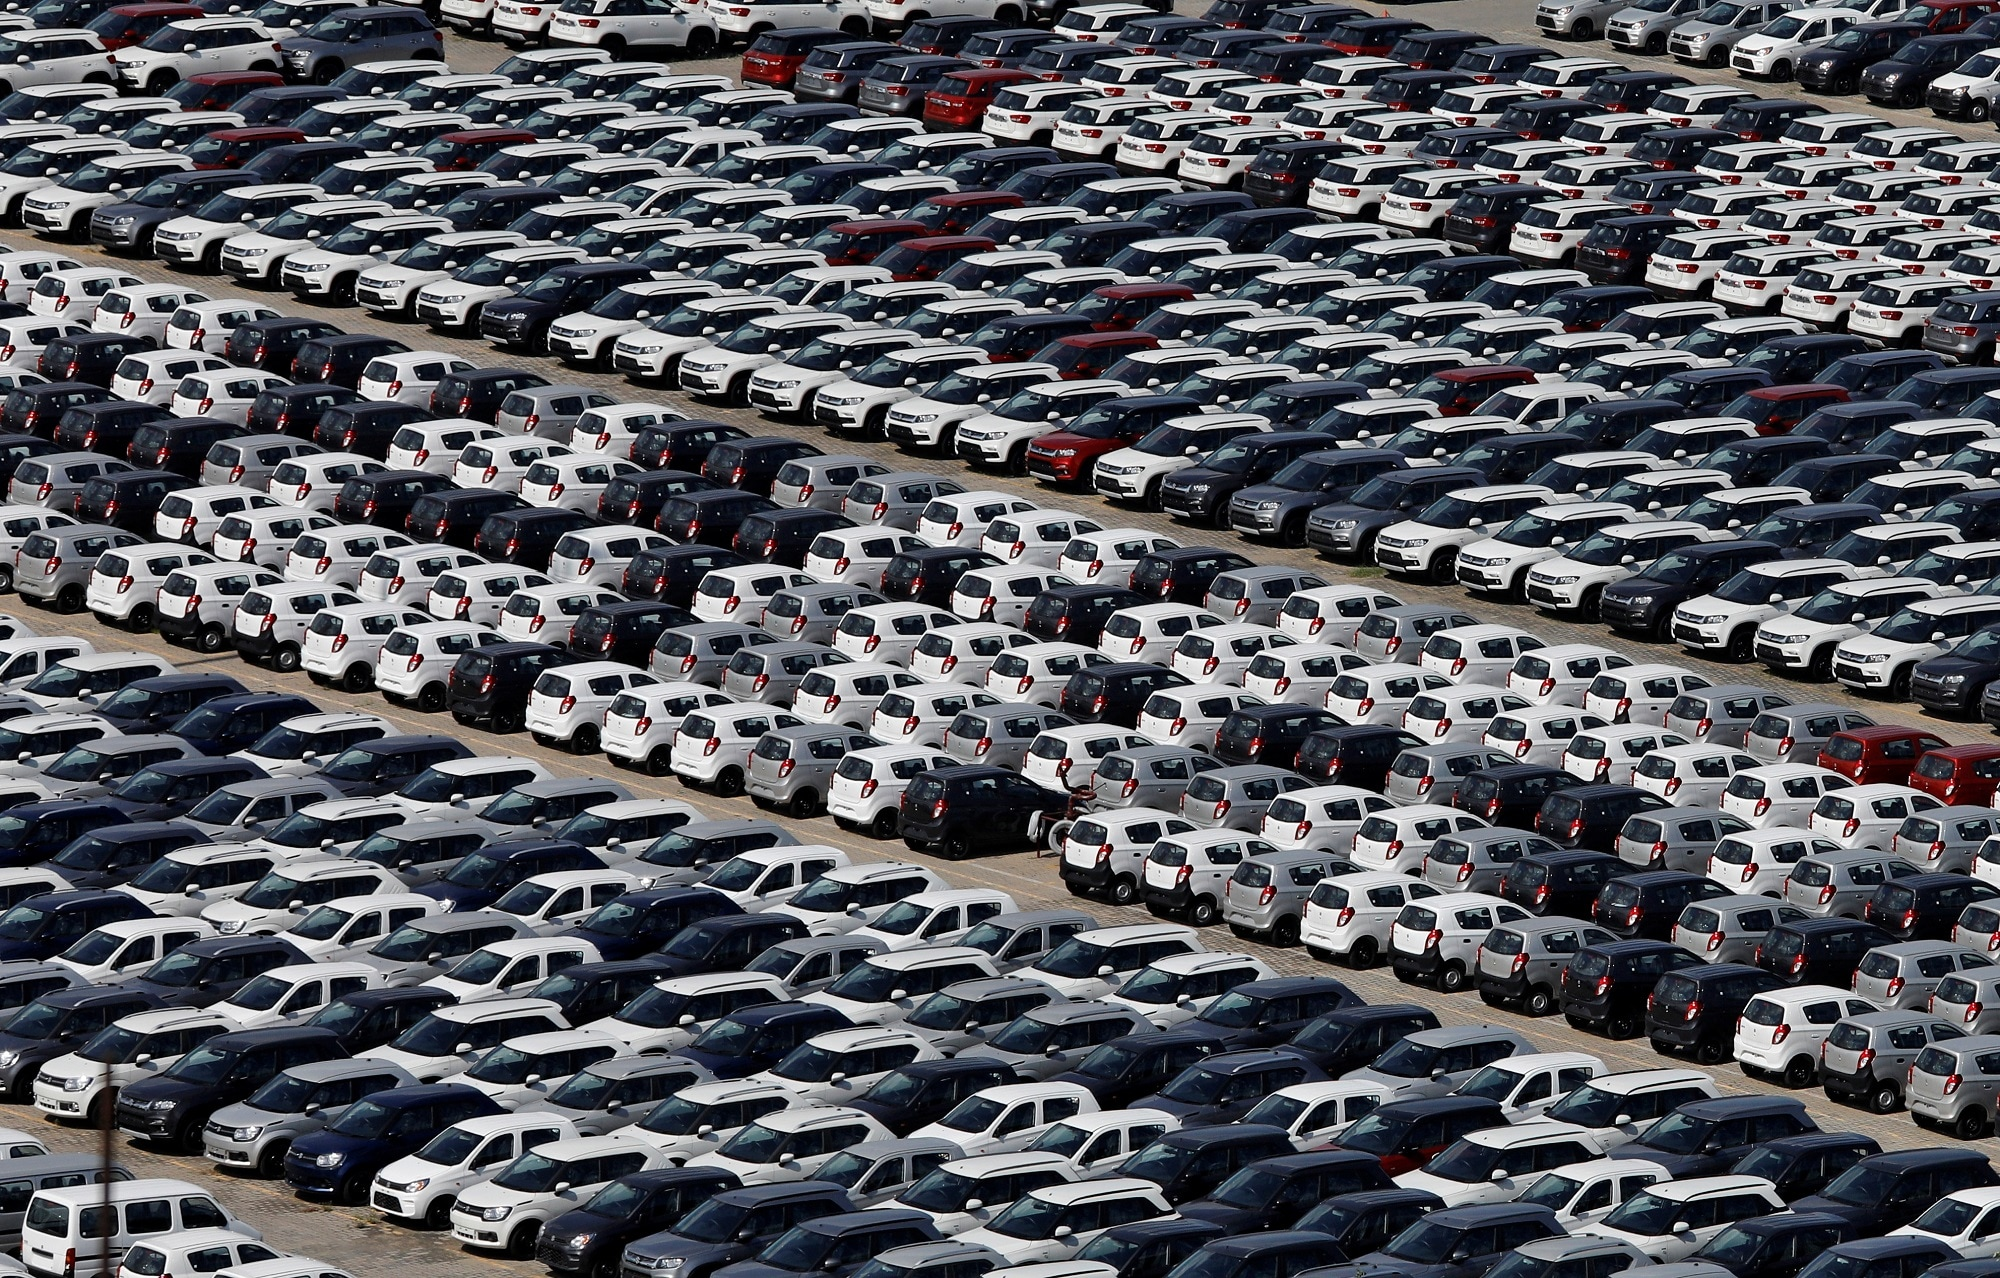 8. SIAM On Auto Industry: Automotive industry body SIAM on Friday sought government intervention to help the sector in the smooth transition to BS-VI emission norms from April next year, saying the prospect of abrupt stoppage of manufacturing and sales of BS-IV vehicles overnight posed a